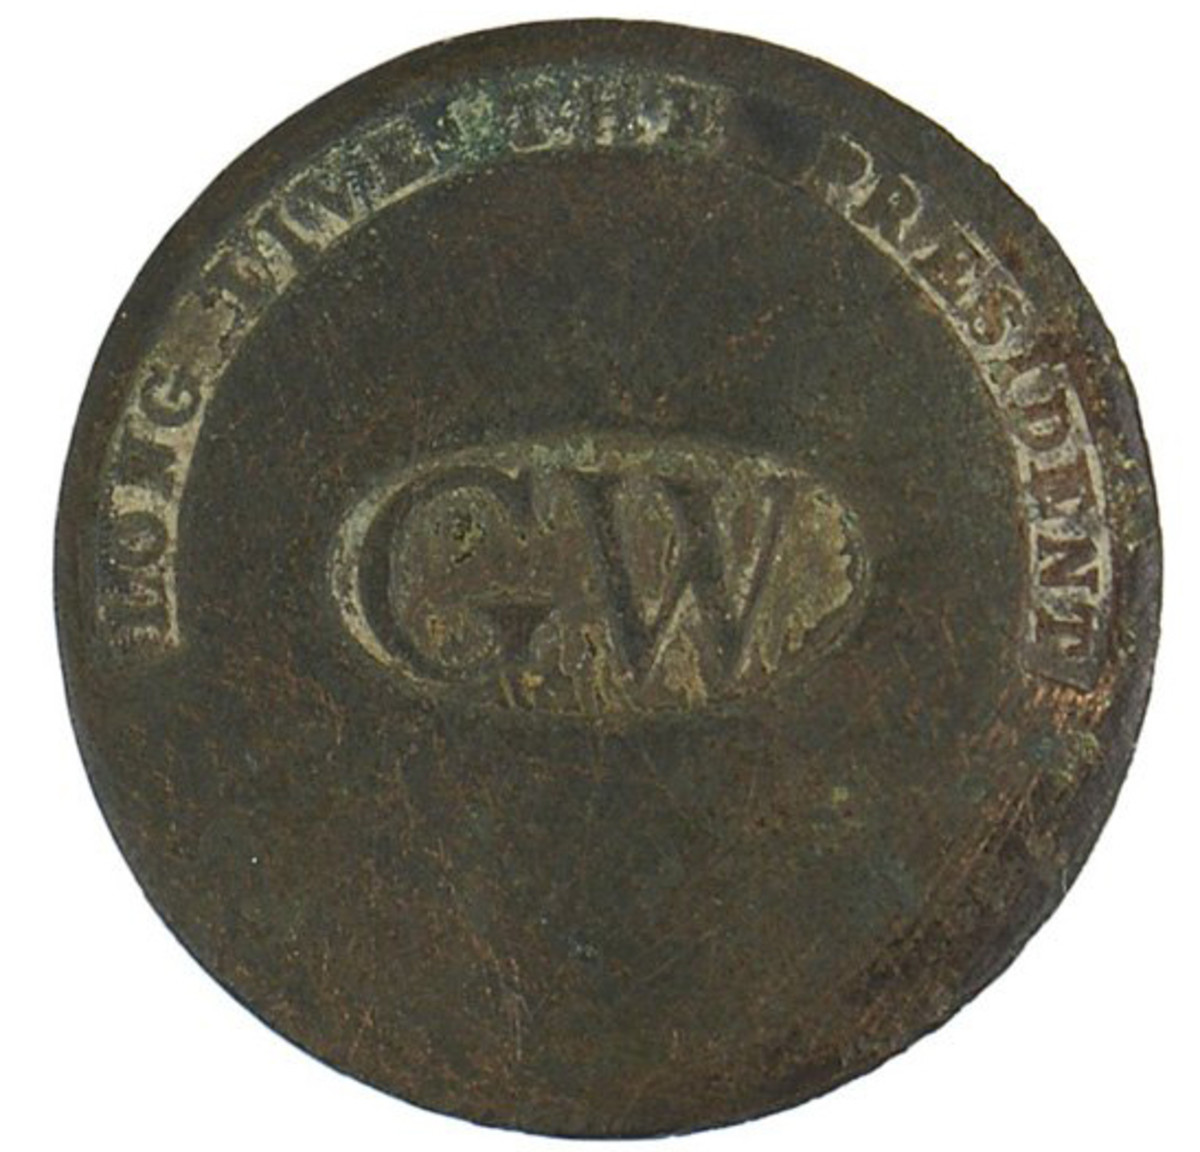 Actual flat copper button from the inauguration of President George Washington ($1,645).